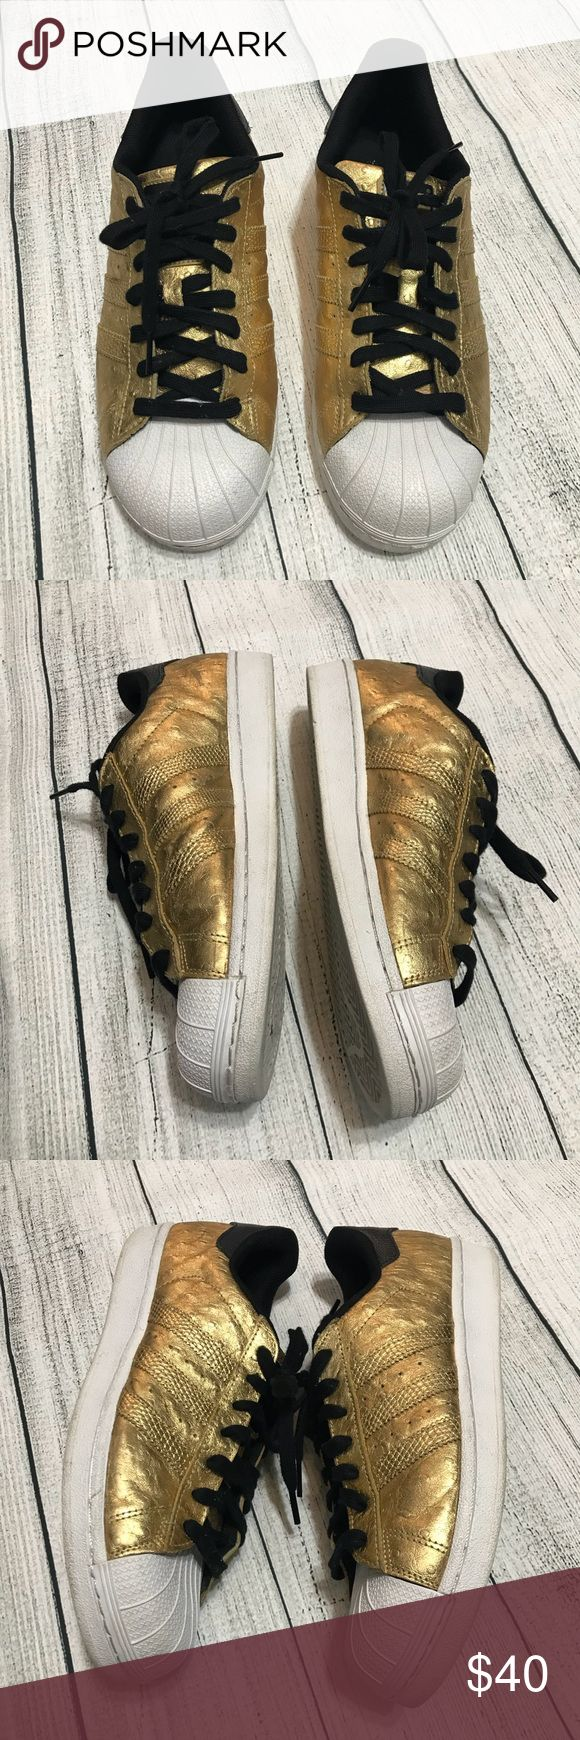 Adidas La Marque Gold Sneakers Size Men's 9 Adidas La Marque Gold Sneakers Size Men's 9 Good condition; no damage; adidas Shoes Sneakers